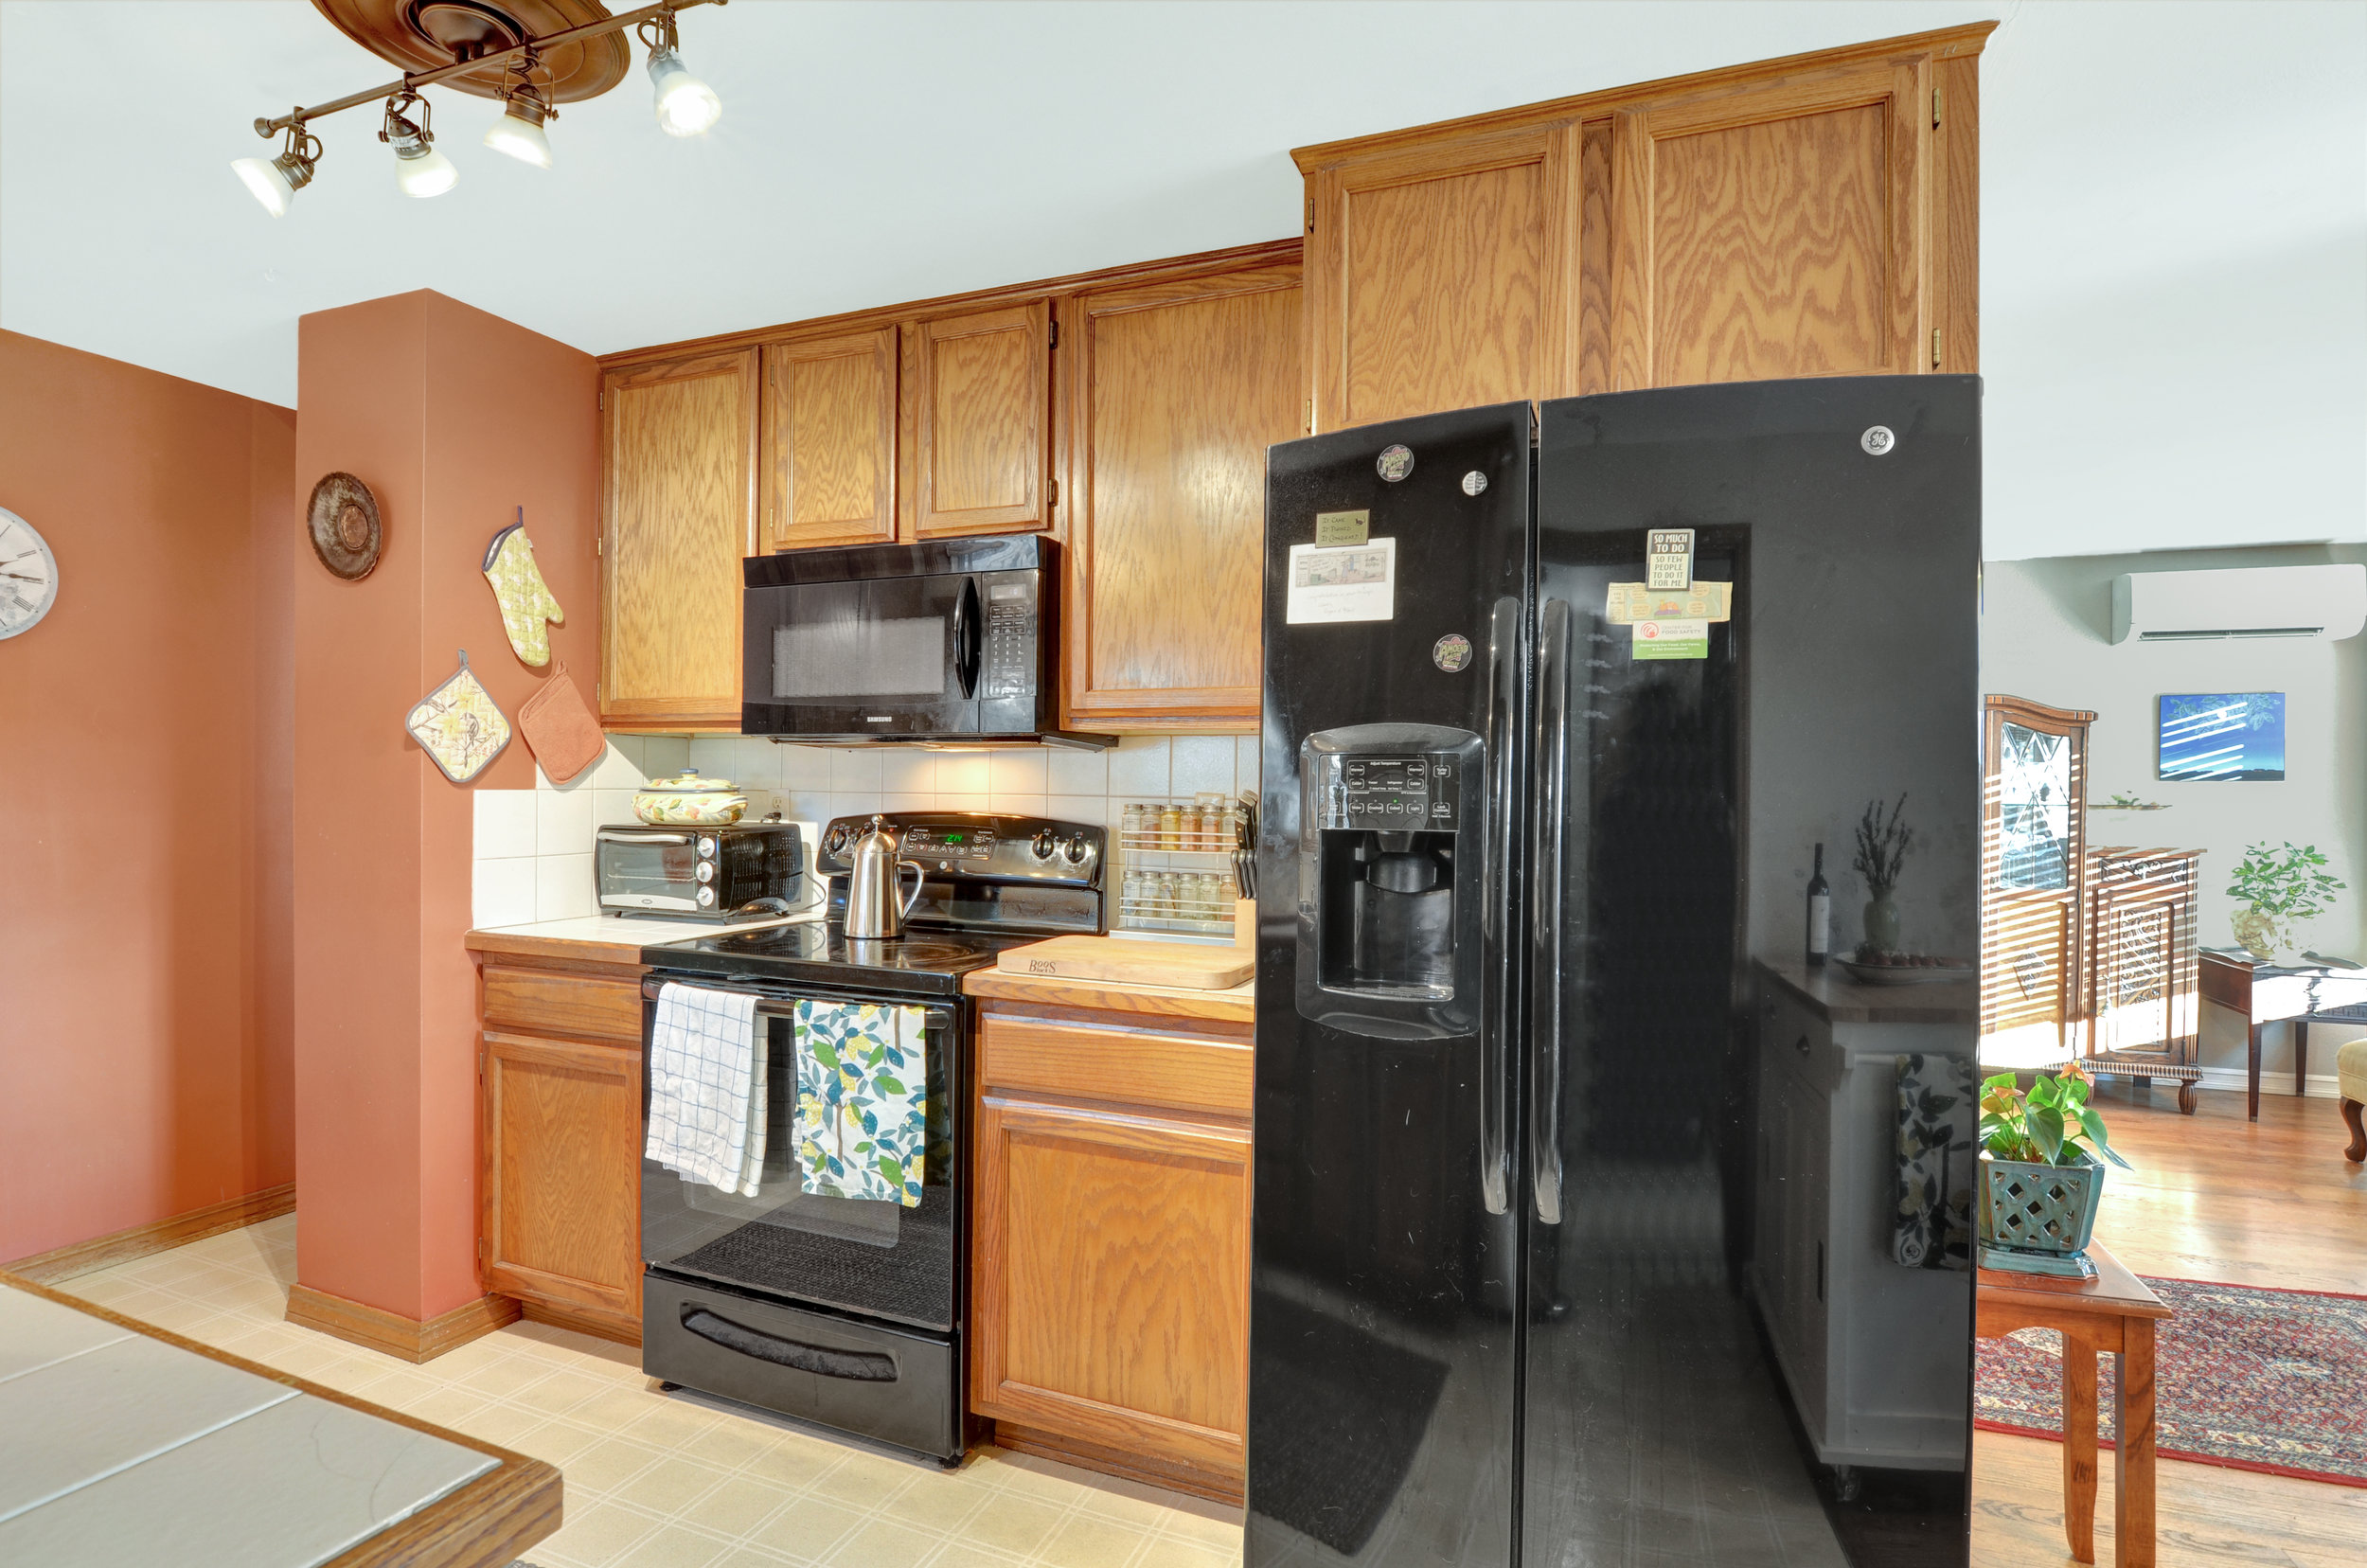 Side-by-side fridge, smooth top stove, and microwave (dishwasher is beside the sink). Turn right past the stove to enter the hallway at the end of the living room.